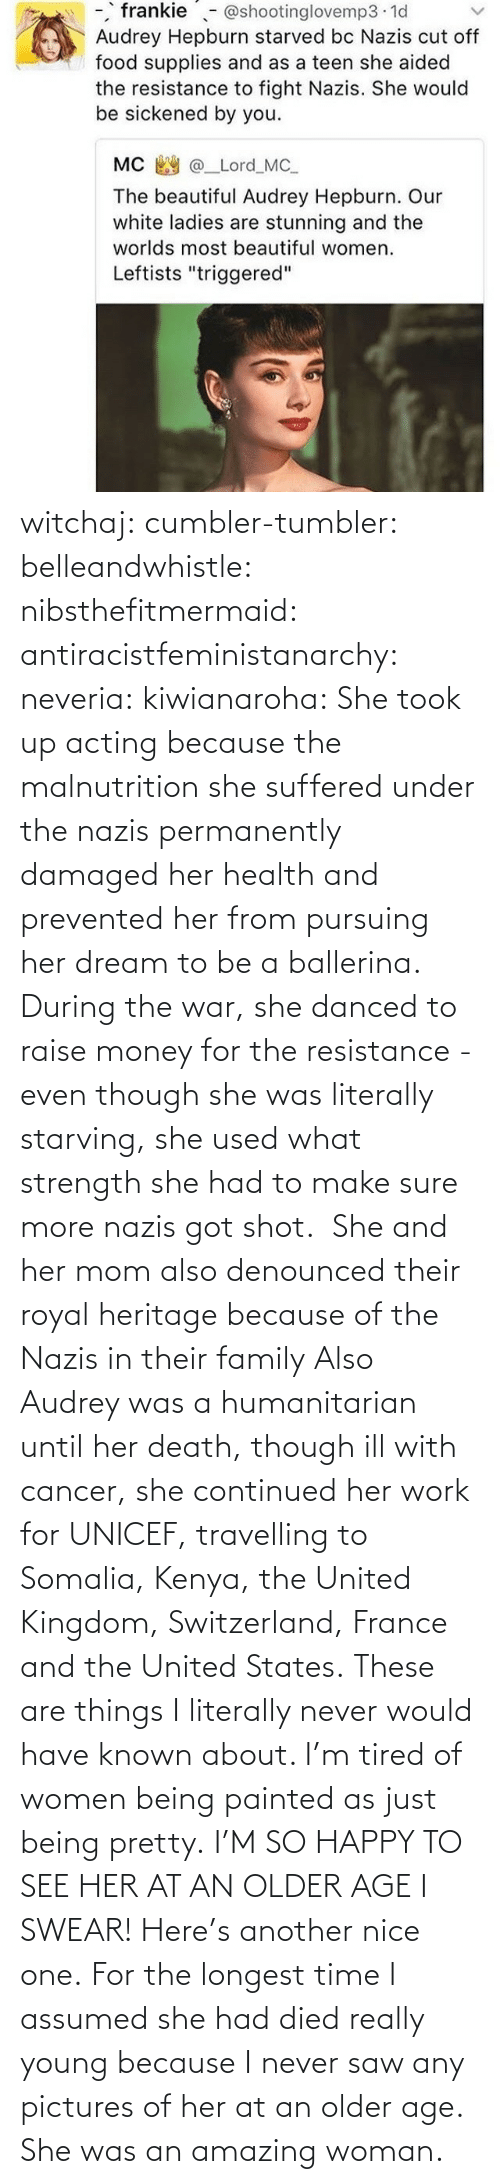 what: witchaj: cumbler-tumbler:  belleandwhistle:  nibsthefitmermaid:  antiracistfeministanarchy:  neveria:  kiwianaroha: She took up acting because the malnutrition she suffered under the nazis permanently damaged her health and prevented her from pursuing her dream to be a ballerina. During the war, she danced to raise money for the resistance - even though she was literally starving, she used what strength she had to make sure more nazis got shot.  She and her mom also denounced their royal heritage because of the Nazis in their family  Also Audrey was a humanitarian until her death, though ill with cancer, she continued her work for UNICEF, travelling to Somalia, Kenya, the United Kingdom, Switzerland, France and the United States.  These are things I literally never would have known about. I'm tired of women being painted as just being pretty.  I'M SO HAPPY TO SEE HER AT AN OLDER AGE I SWEAR!  Here's another nice one.   For the longest time I assumed she had died really young because I never saw any pictures of her at an older age.  She was an amazing woman.